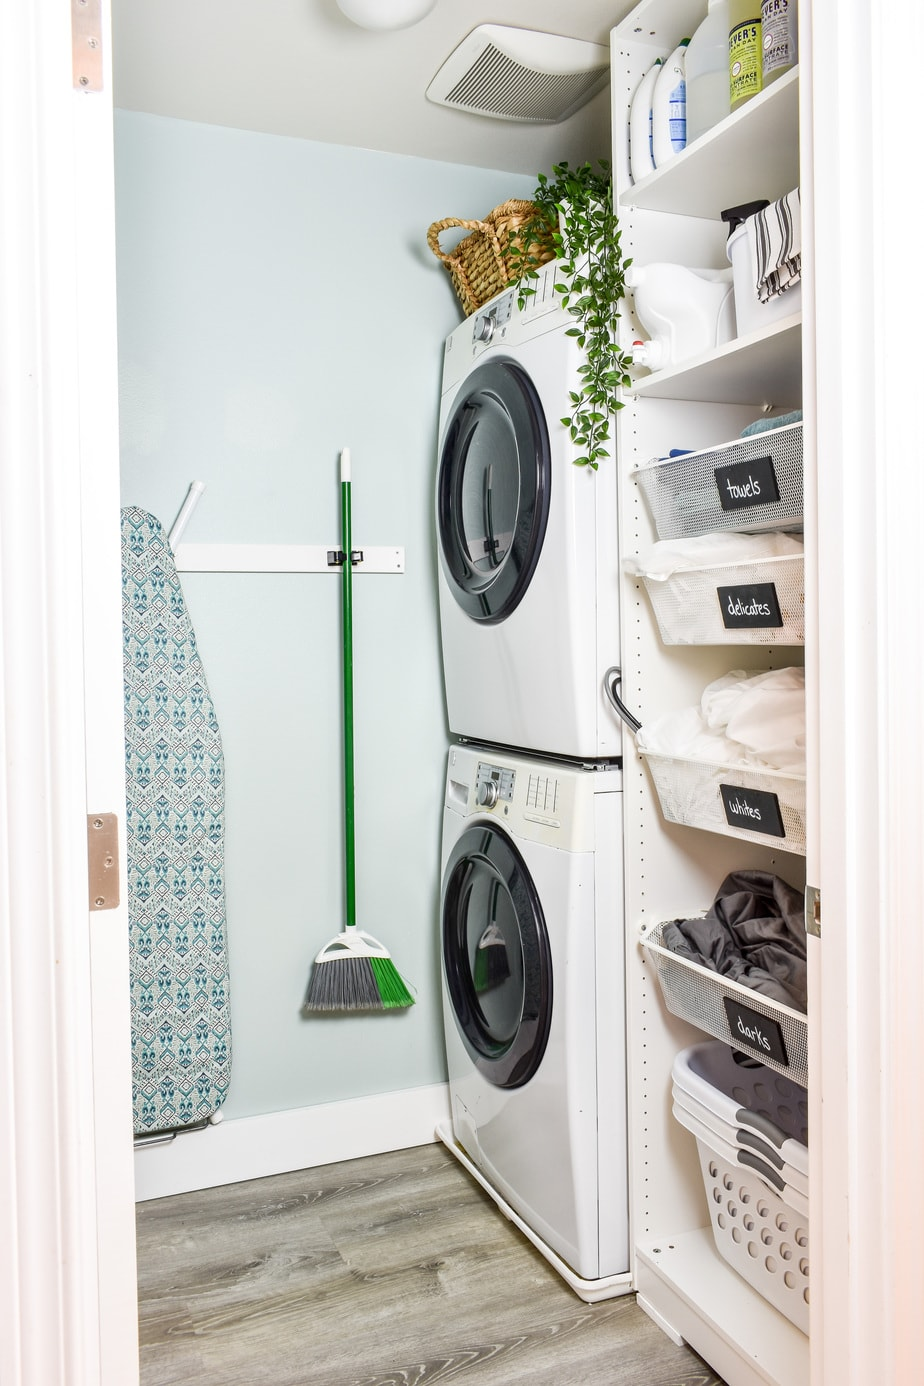 This small laundry room makeover on a budget makes the most of every square inch! It includes a stackable washer and dryer, sorting space, laundry basket storage, an ironing board, and space for detergent and cleaning supplies!